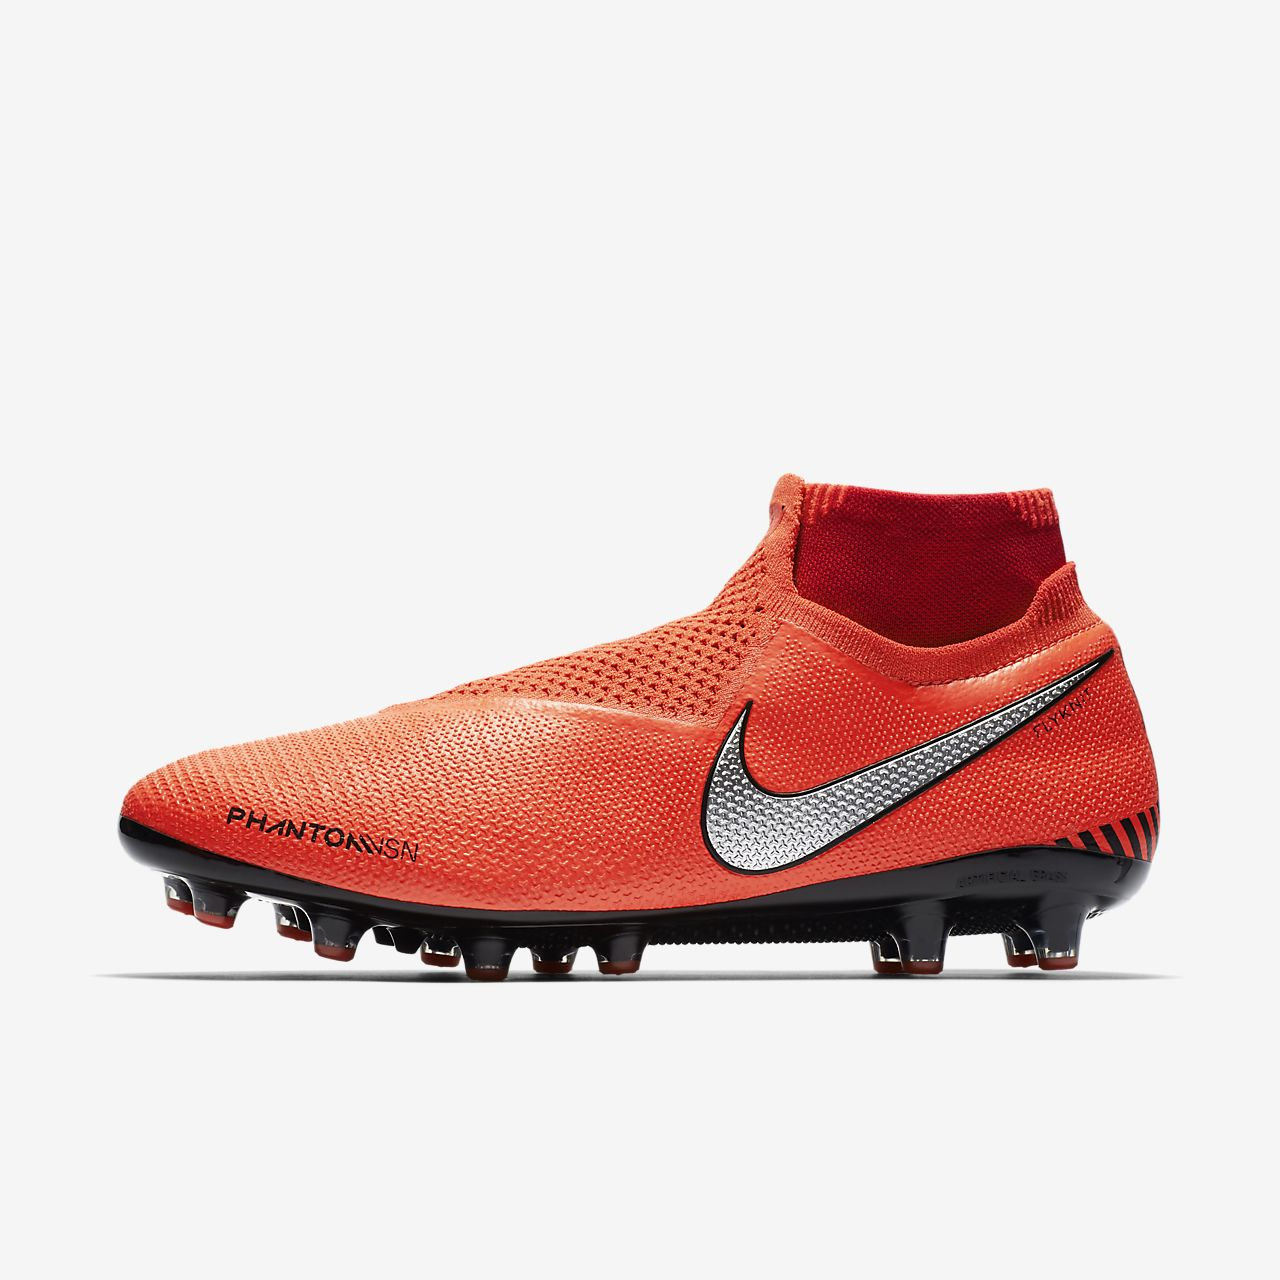 30fa77e064036 ... Chaussure de football à crampons pour terrain synthétique Nike Phantom  Vision Elite Dynamic Fit